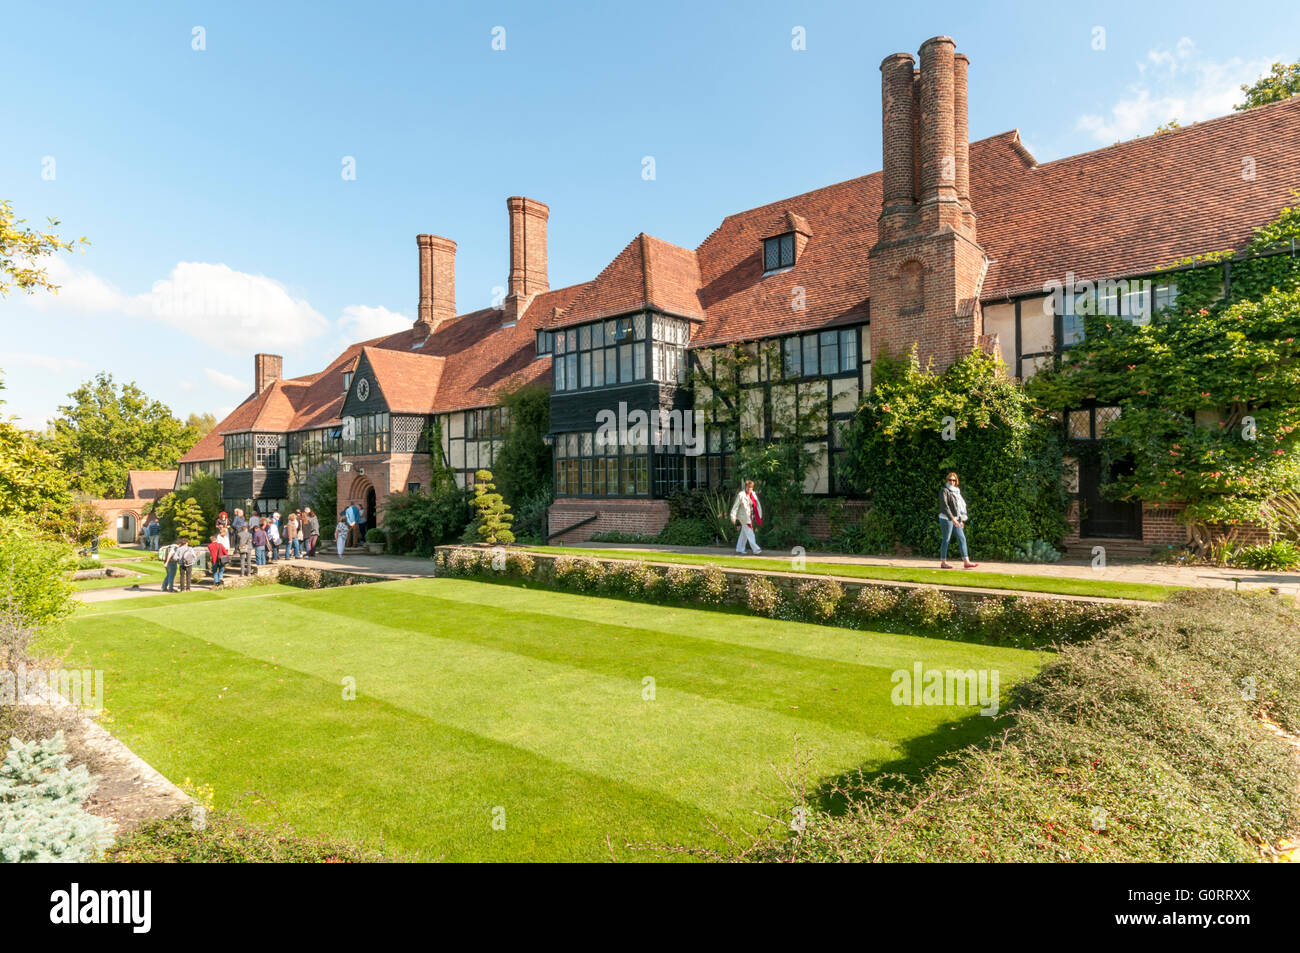 The Grade II listed laboratory at the RHS gardens at Wisley in Surrey. - Stock Image